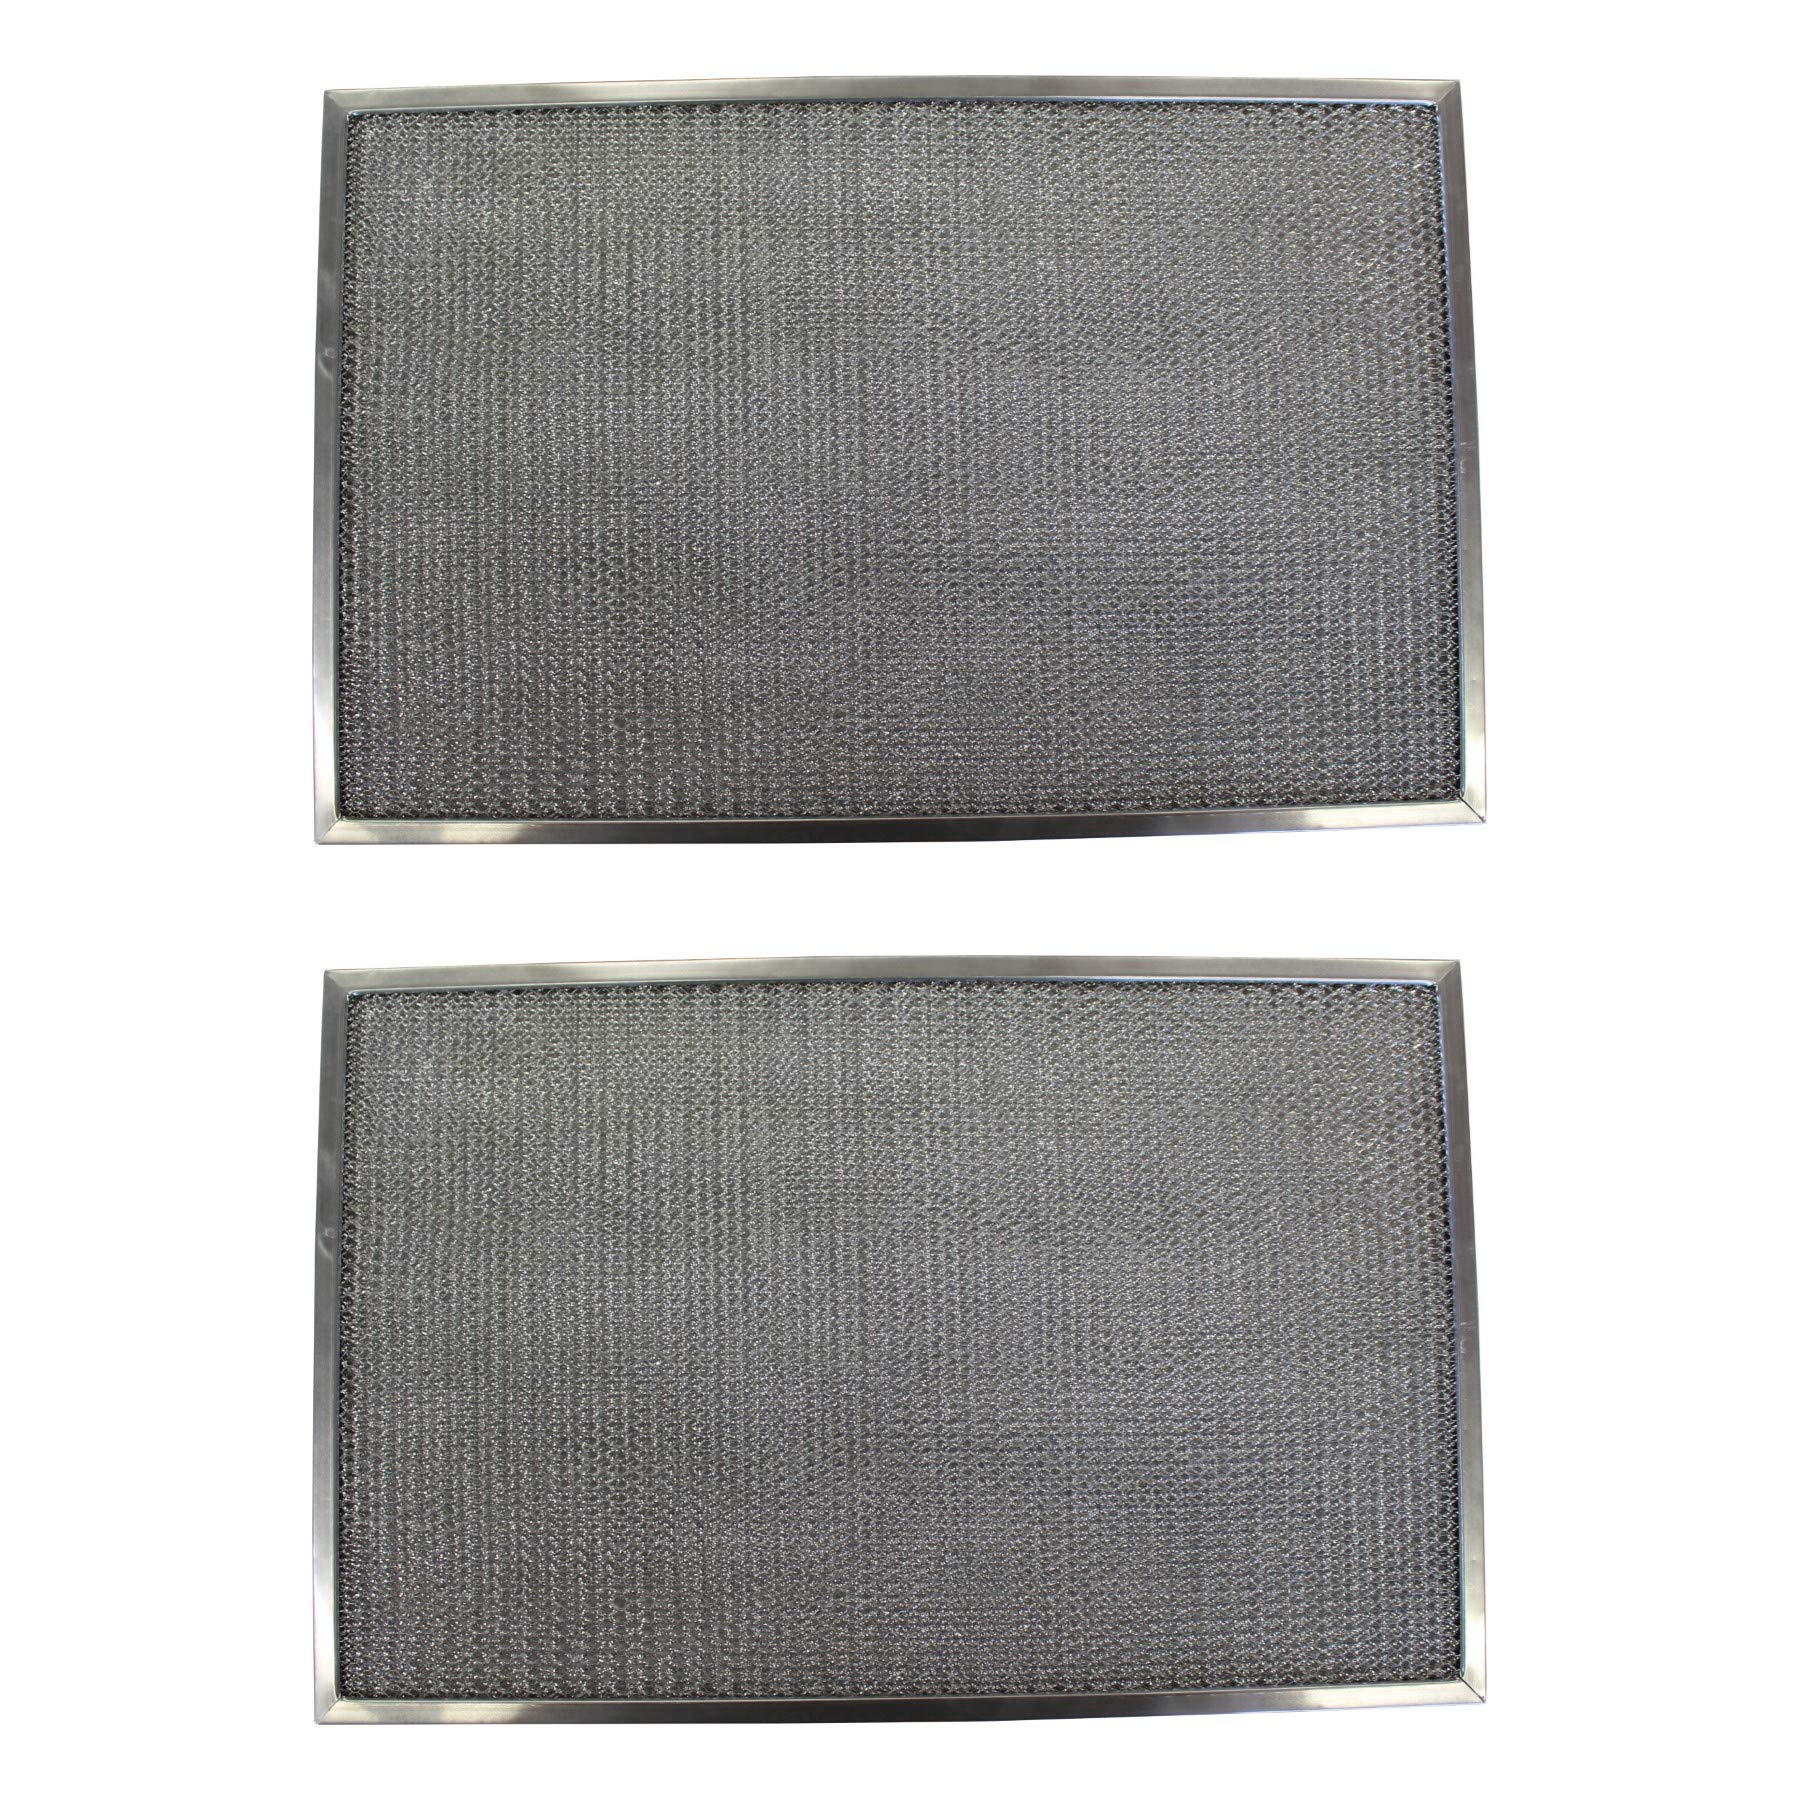 Replacement Aluminum Filters Compatible with Imperial Cal 4020L,G 8687,RHF1108  11 5/16 x 19 15/16 x